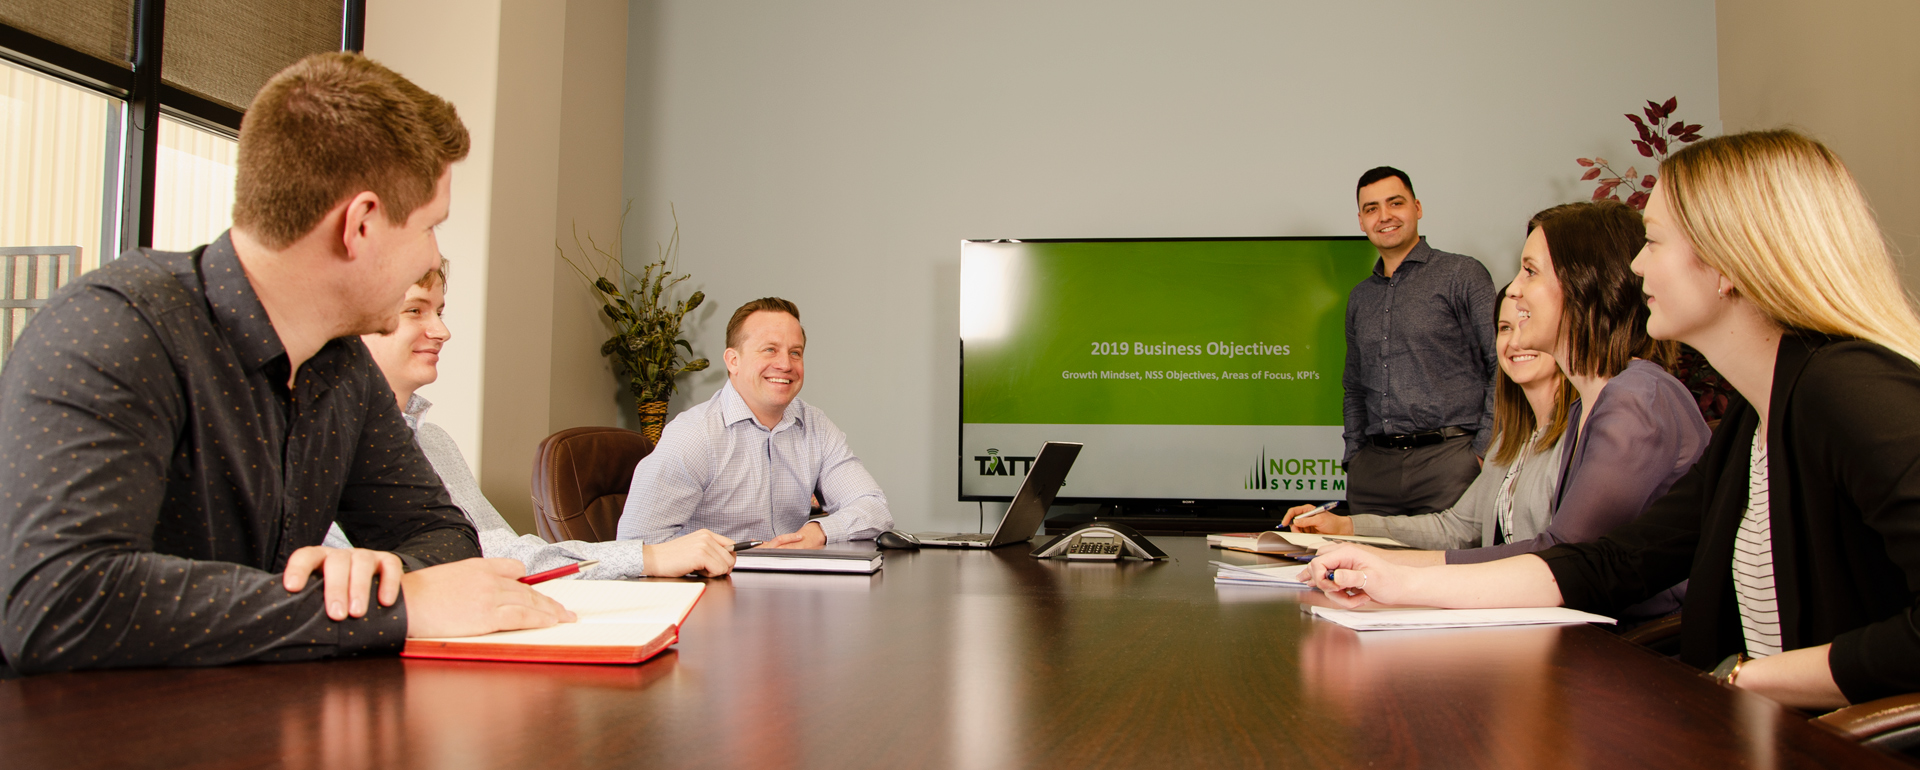 North Star Systems Team around boardroom table in Saskatoon